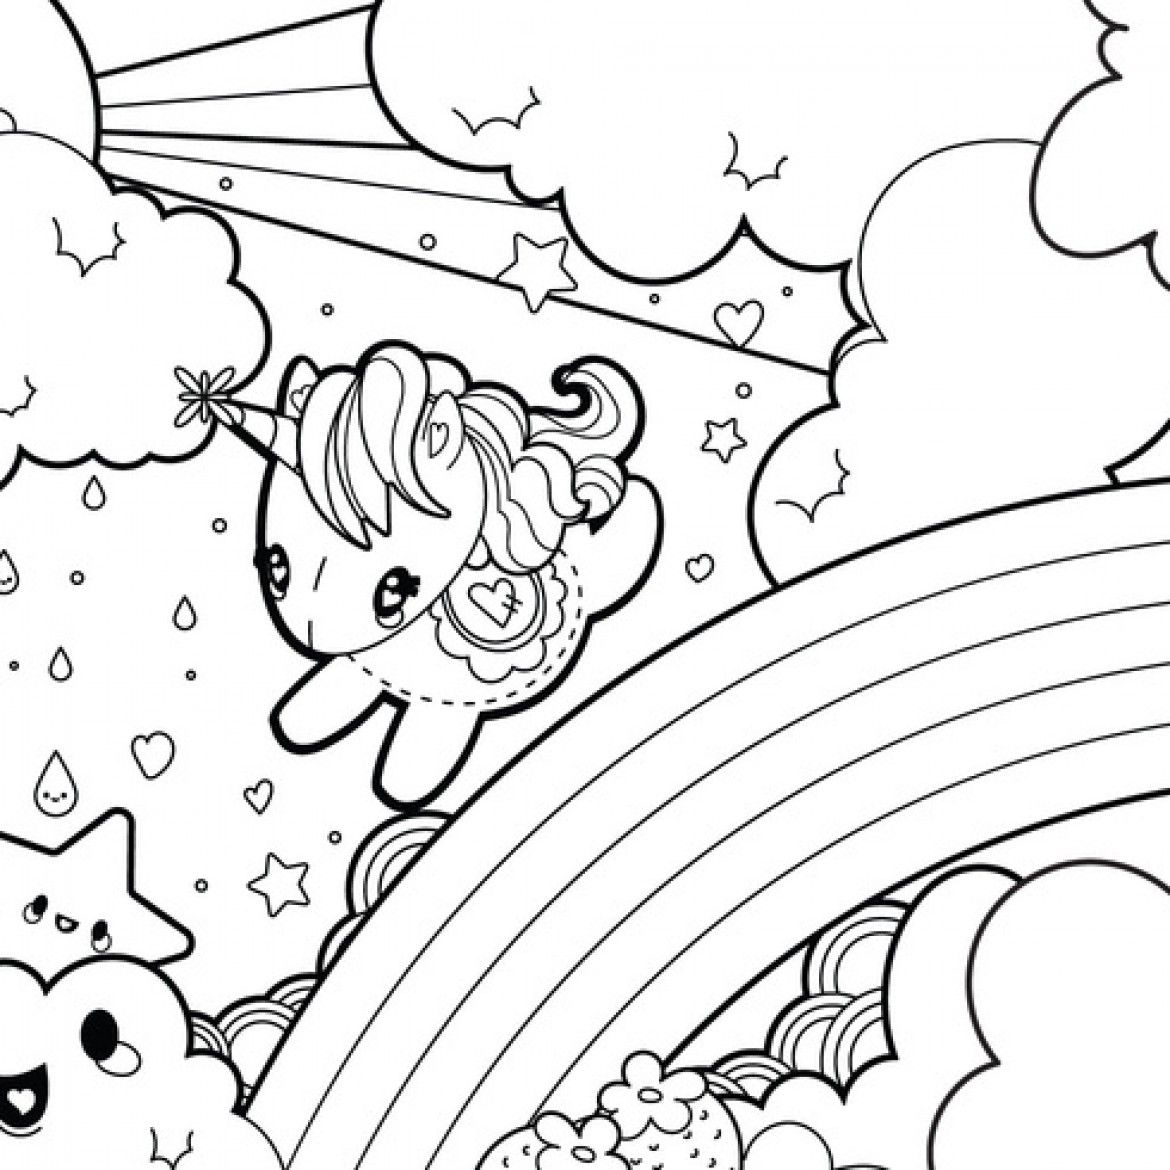 adult unicorn coloring pages - Google Search | Color My World <3 ...